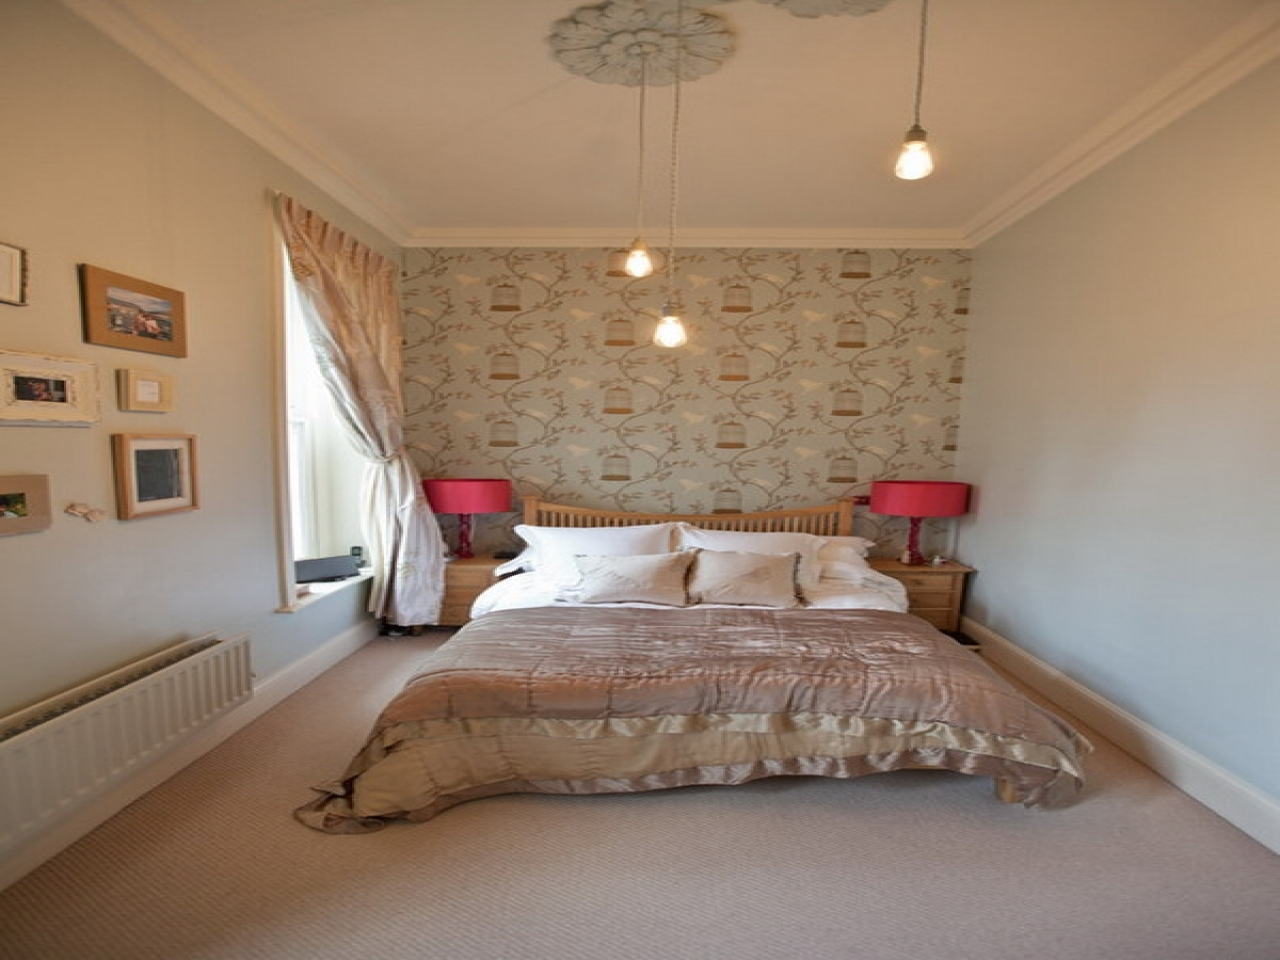 Remodel small bedroom amazing small bedroom decorating